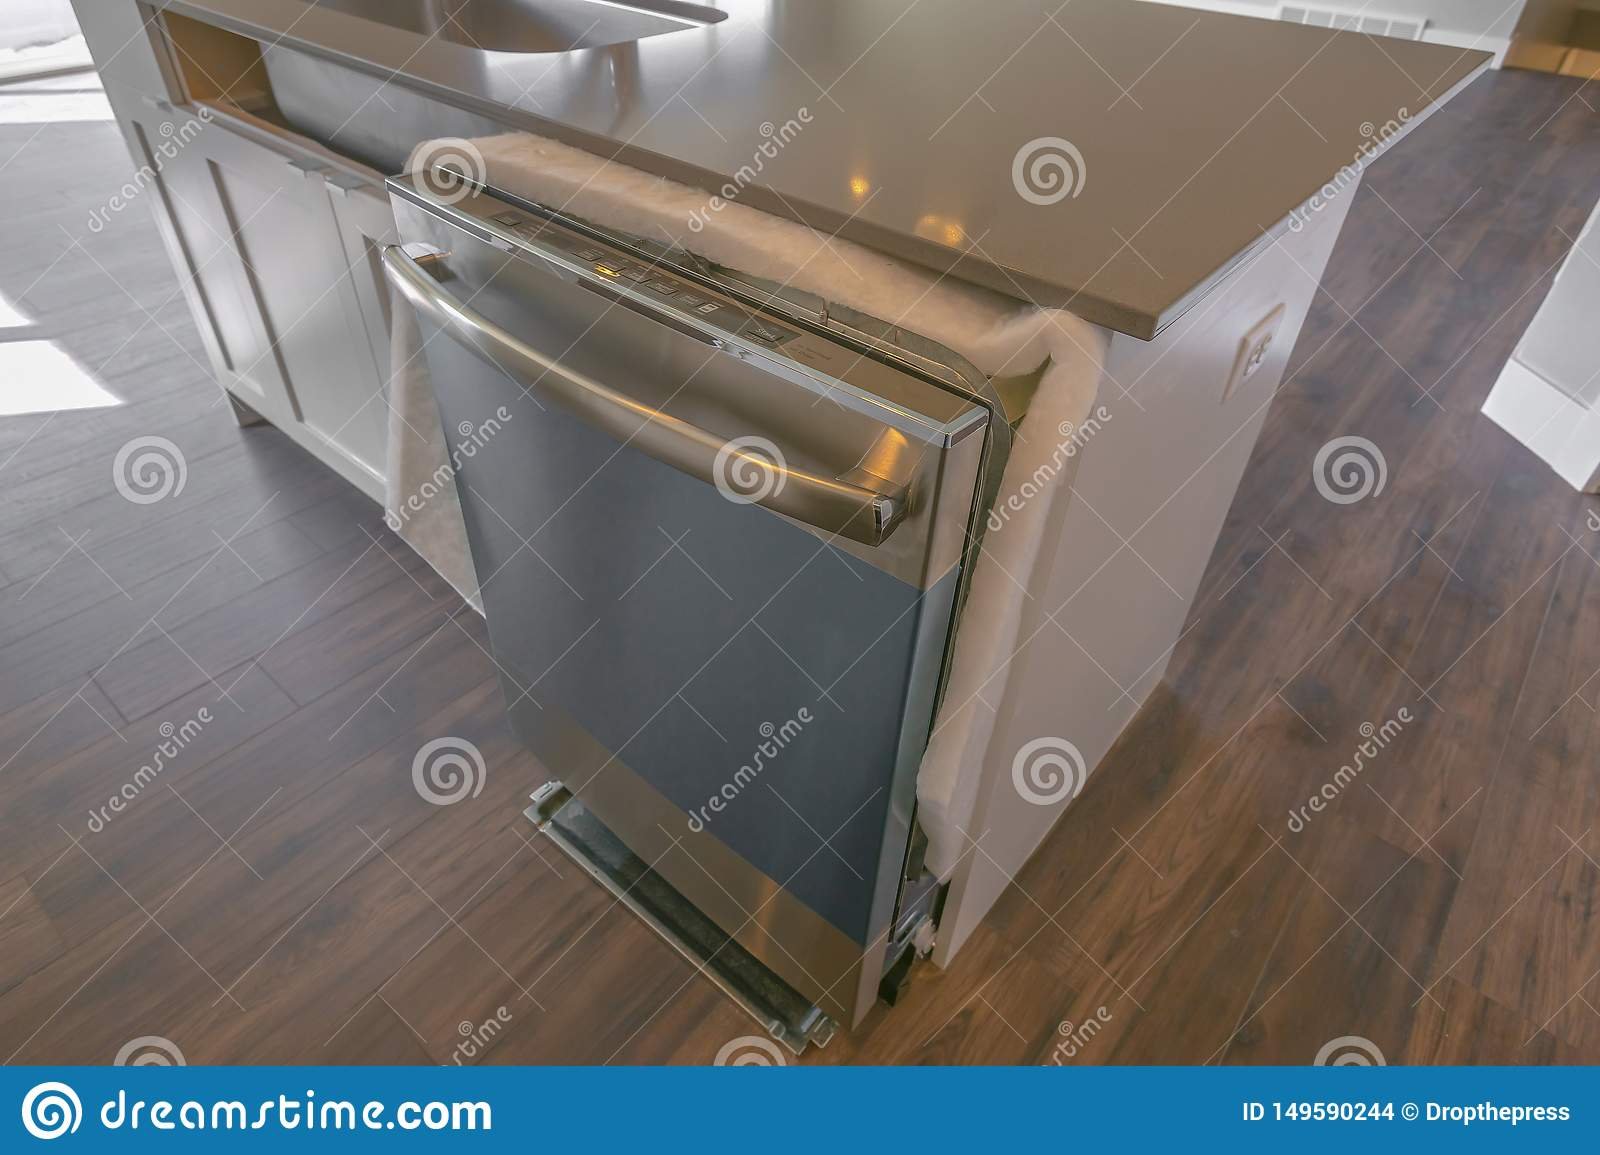 Dishwasher And Sink On A Kitchen Island With Glossy ...